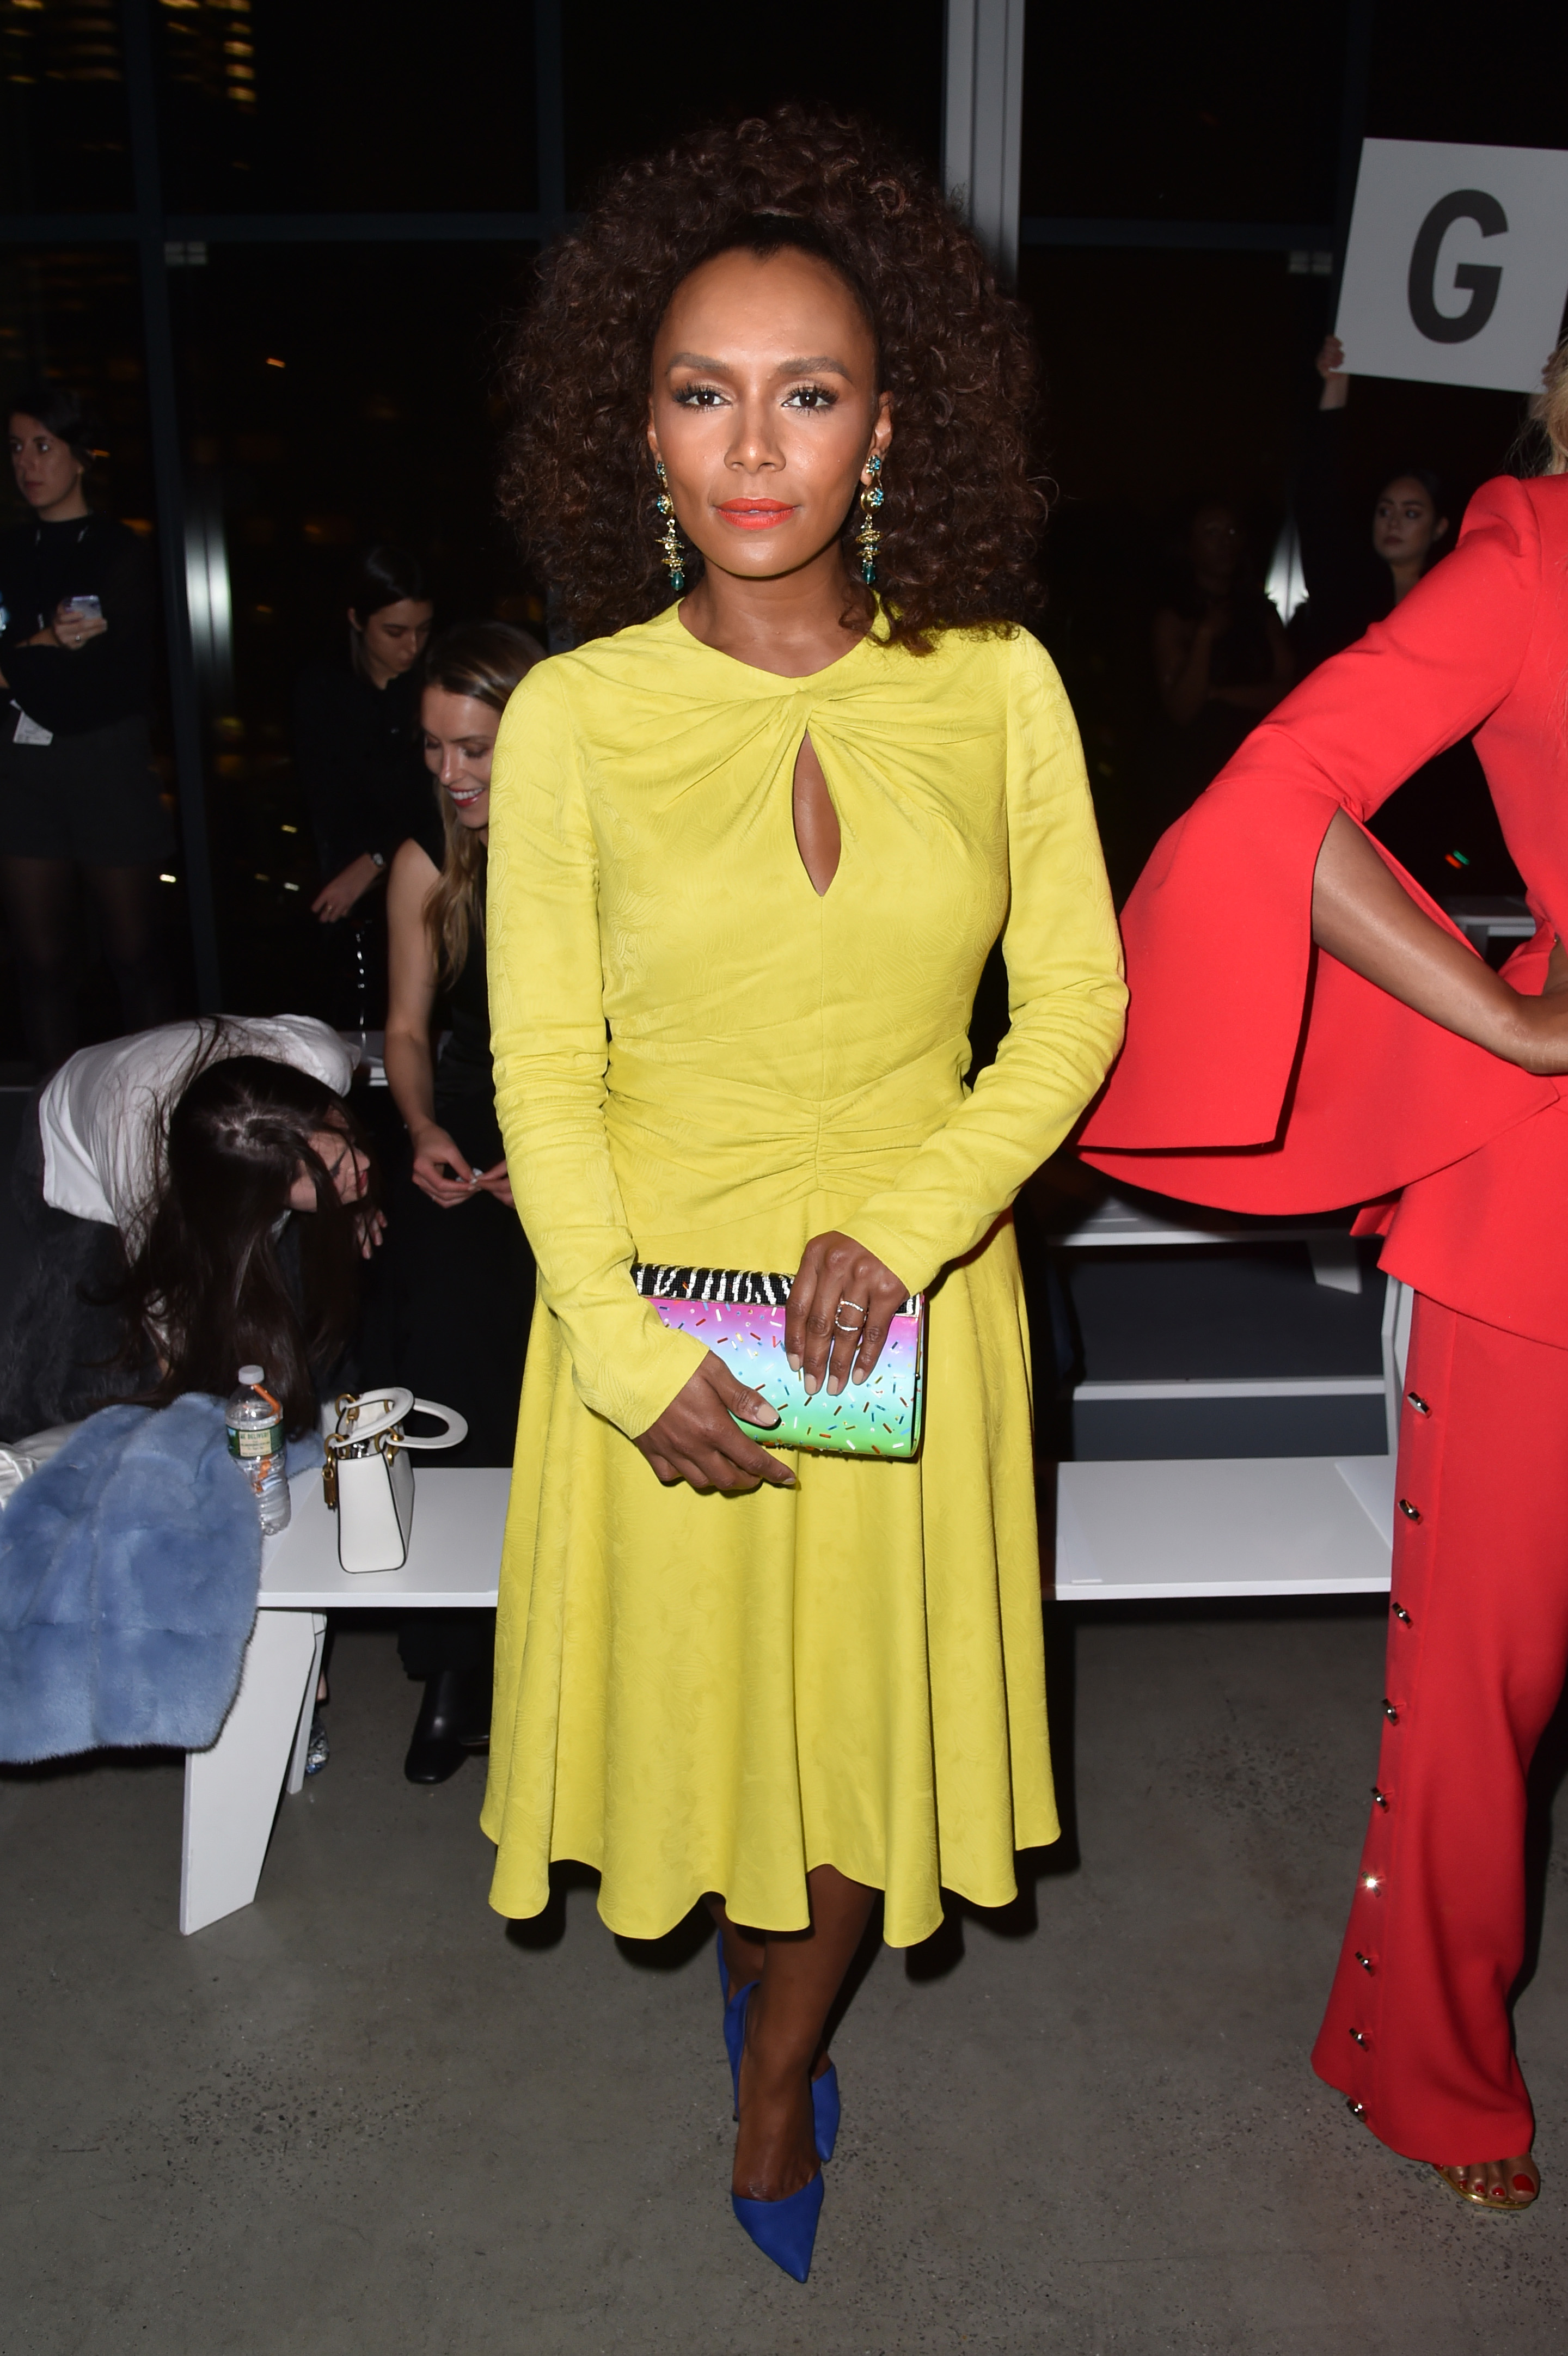 Janet Mock in the front rowPrabal Gurung show, Front Row, Fall Winter 2018, New York Fashion Week, USA - 11 Feb 2018